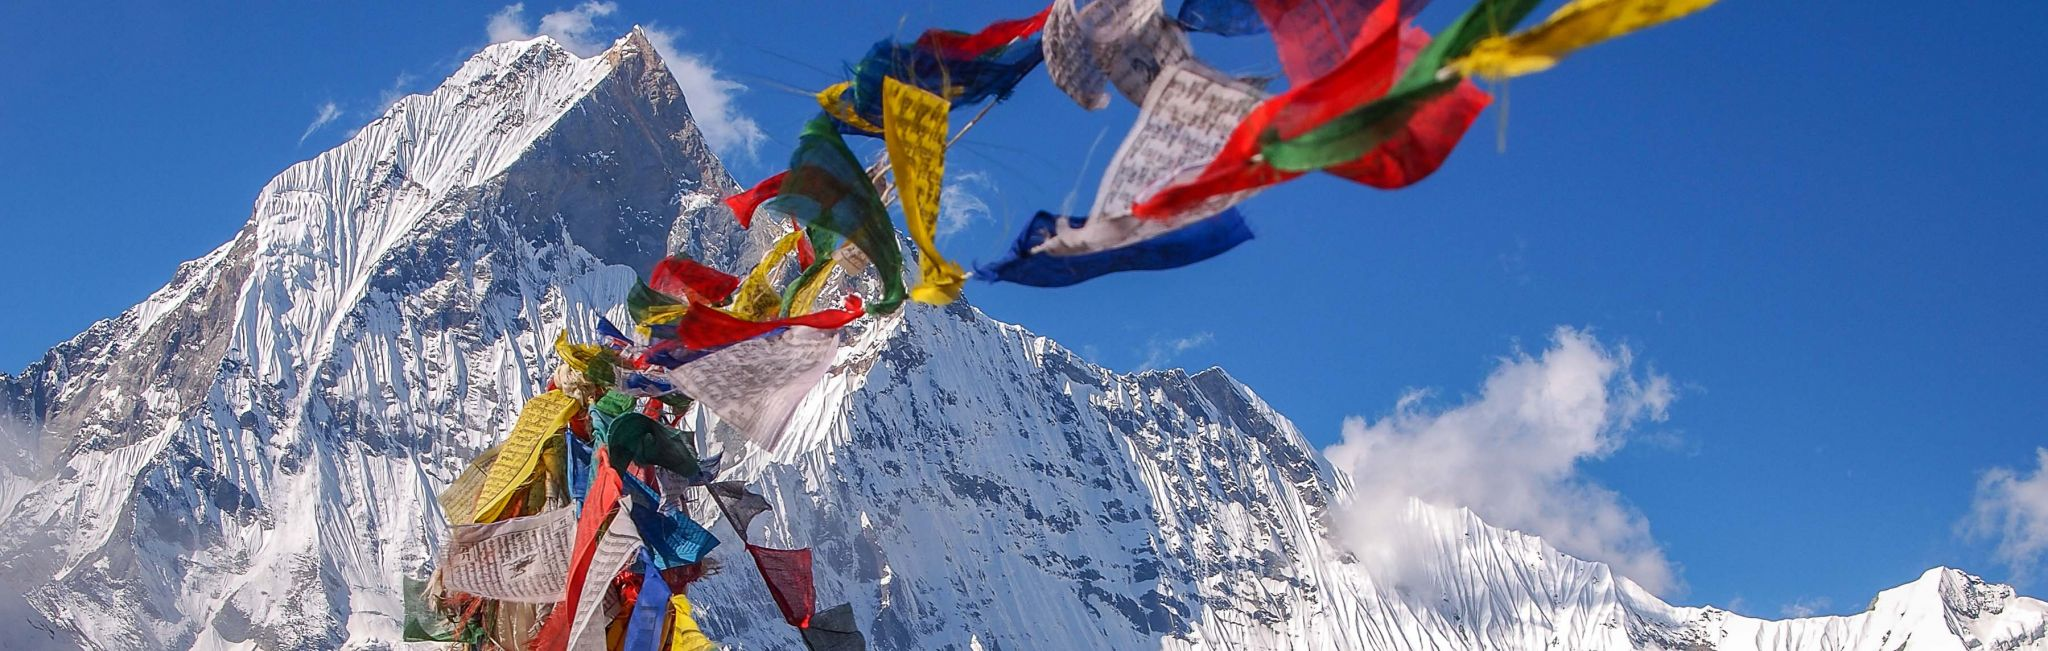 Nepal-Himilayas-Buddhist-Prayer-Flags-at-Camp-with-Peak